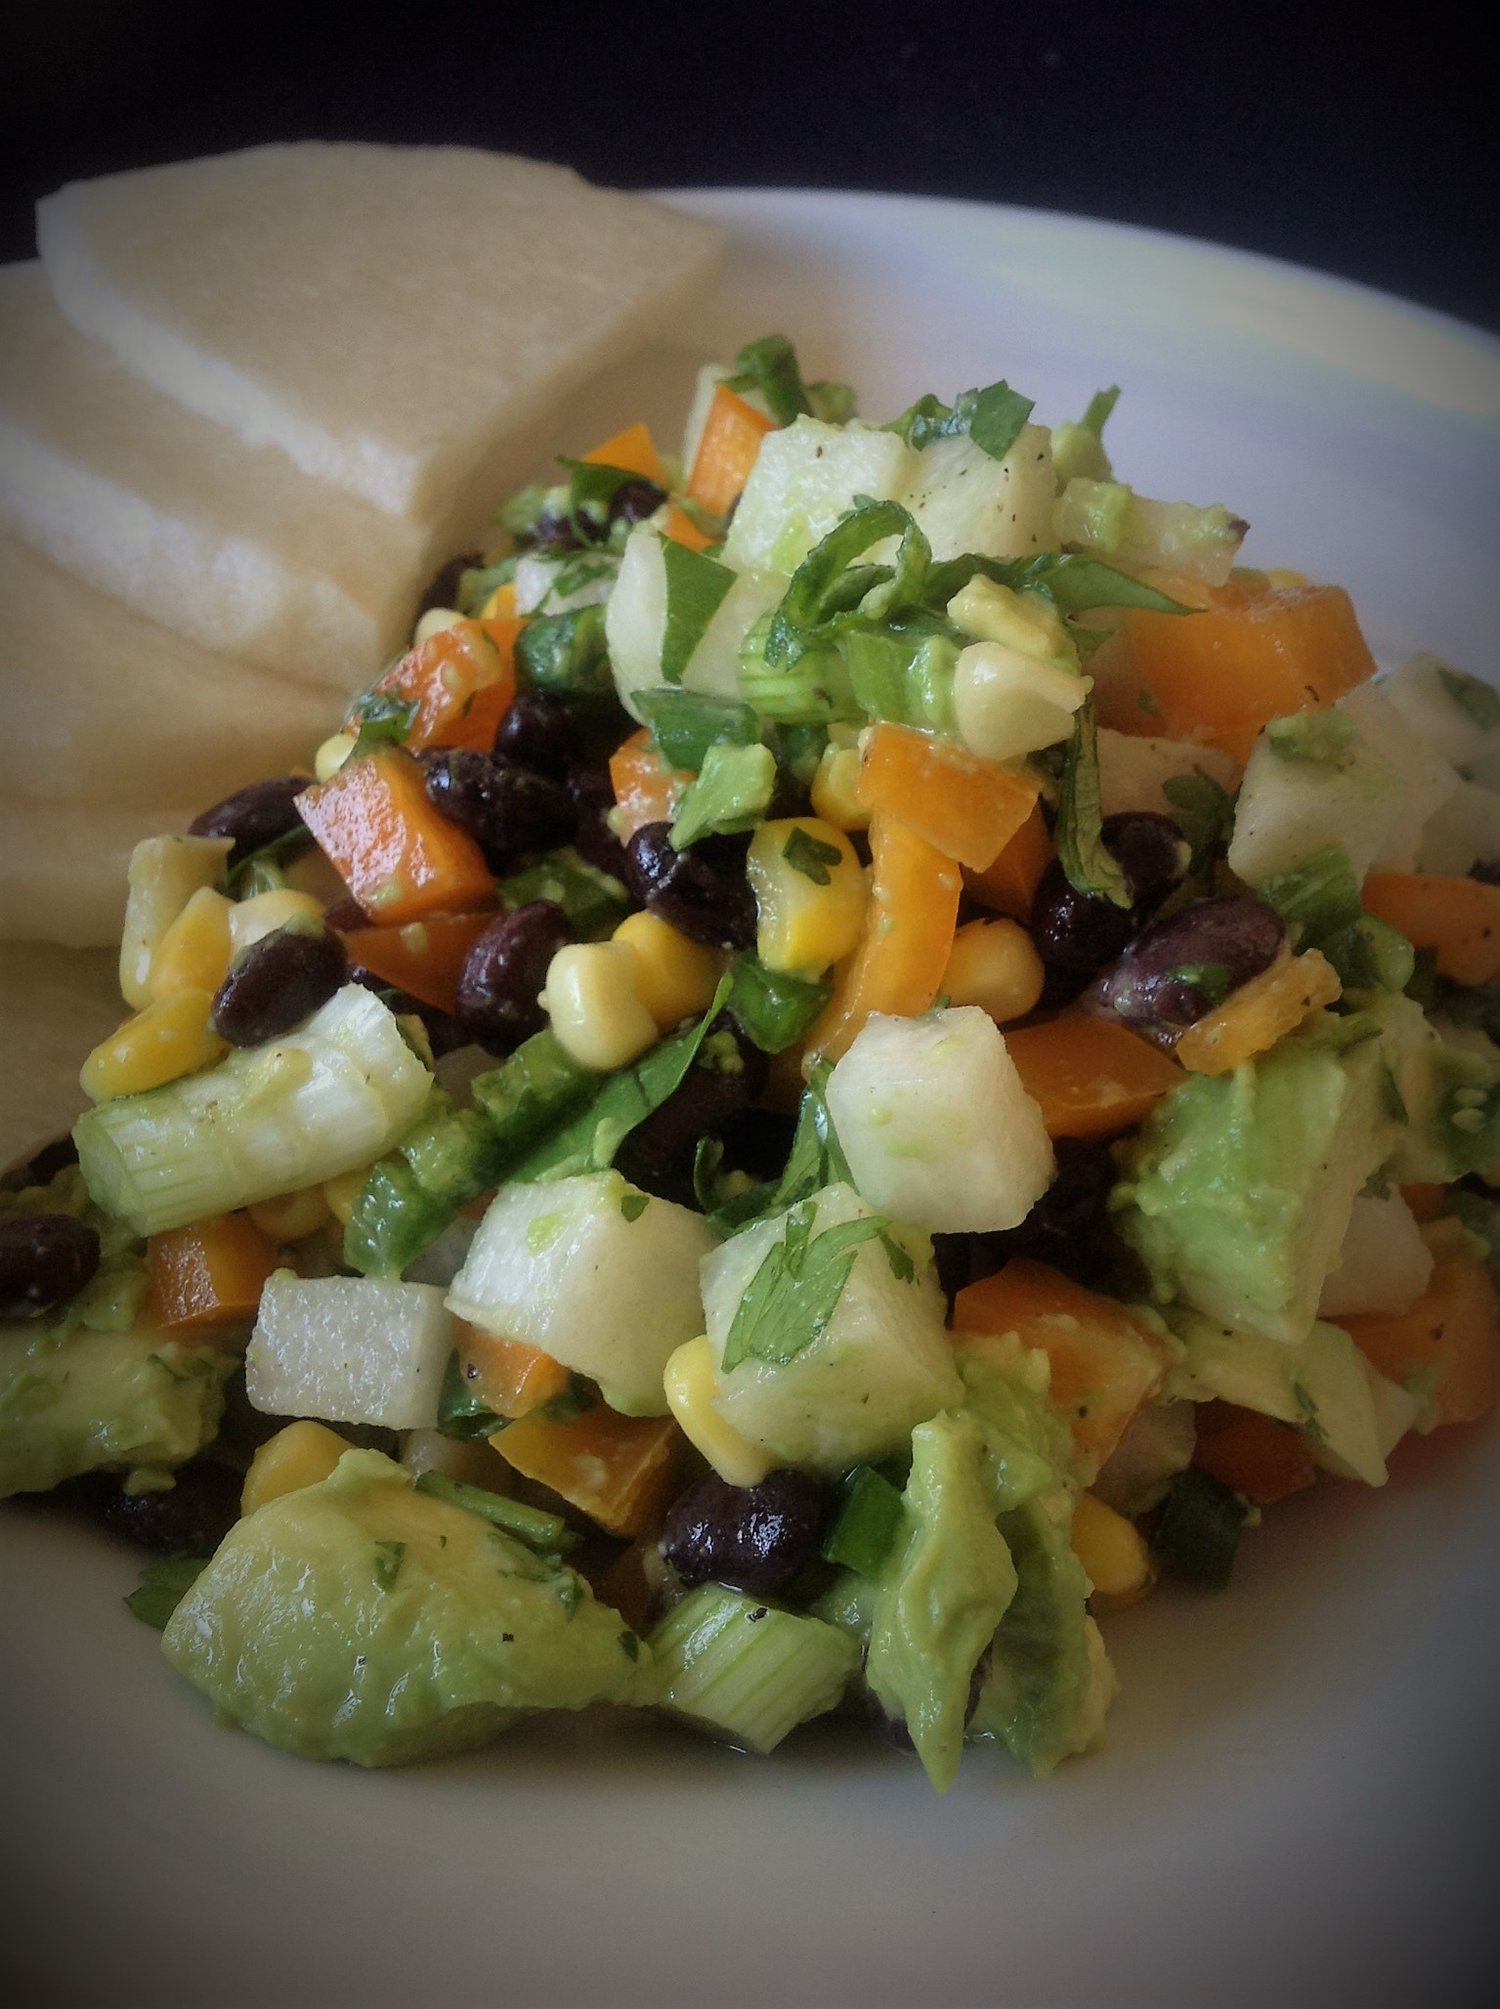 Jicama, Corn, and Black Bean Avocado Salad - Healthy, Easy, Vegan, Plant-Based, Oil-Free, Gluten-Free Guacamole Recipe